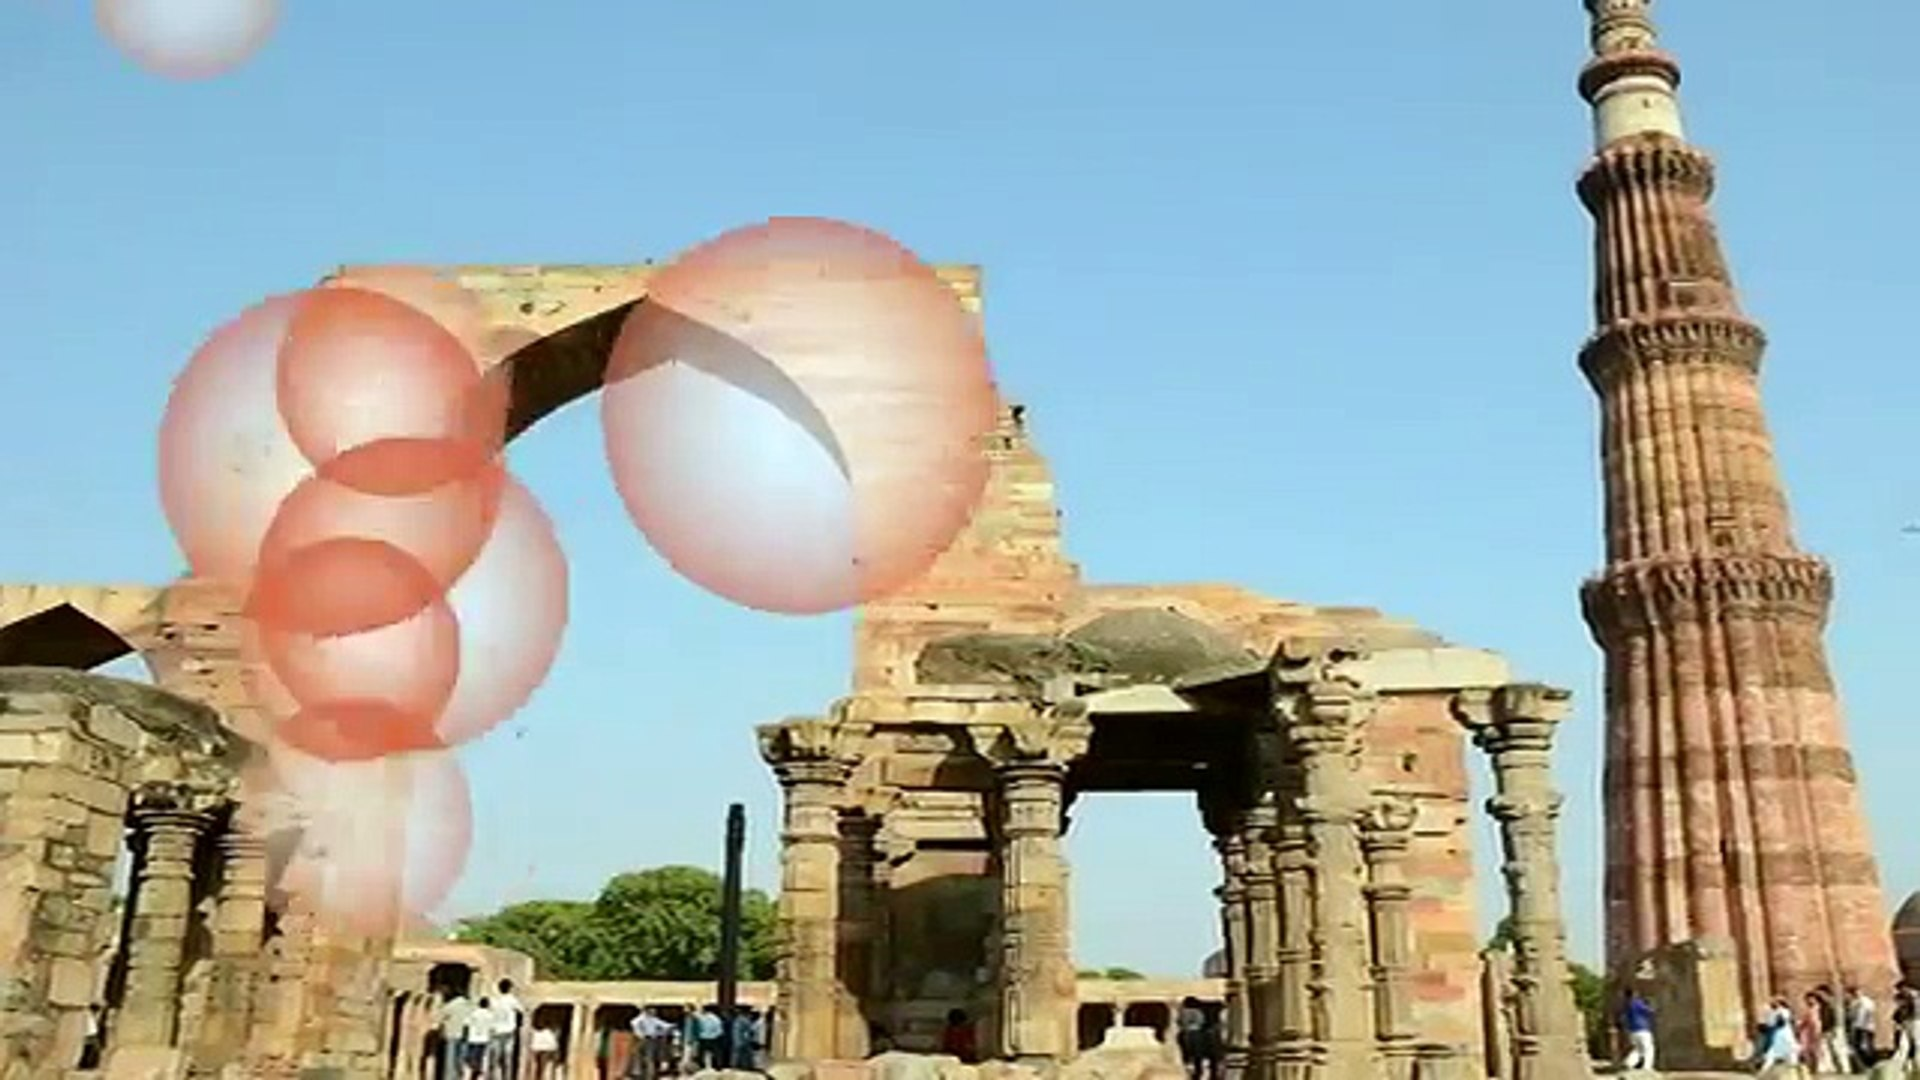 Tourist Attractions in Delhi , Qutb Minar, India